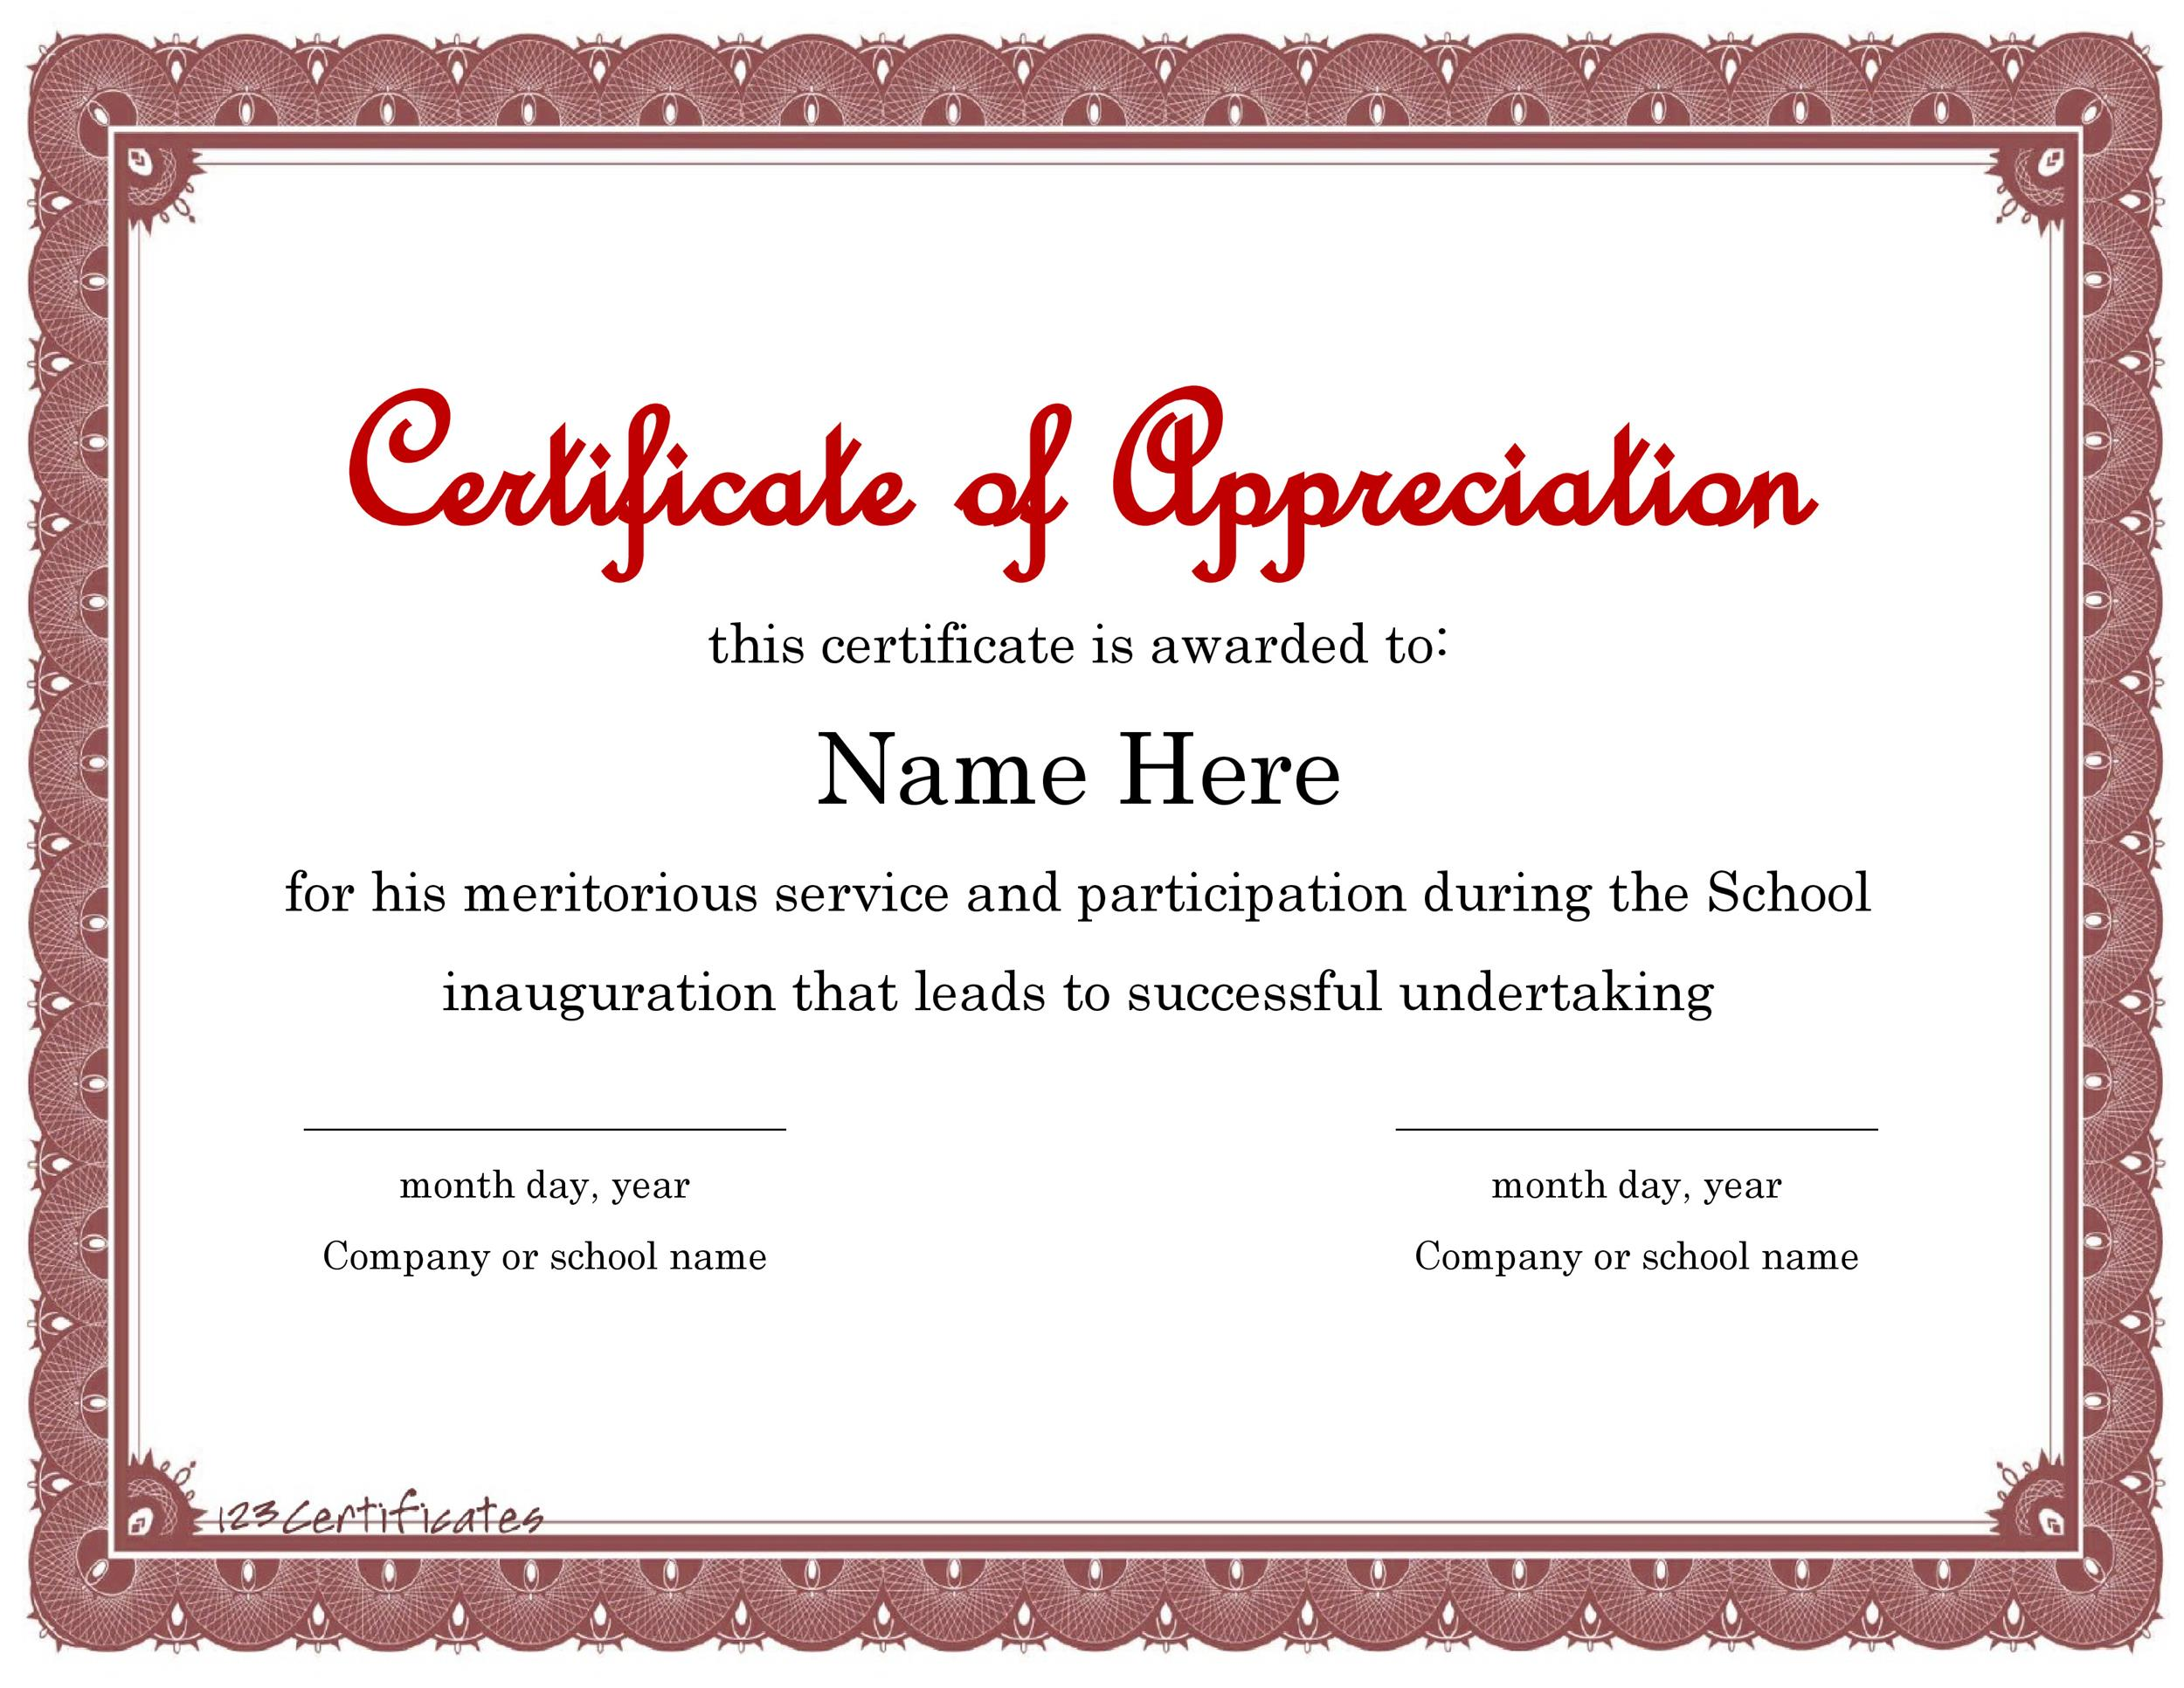 30 free certificate of appreciation templates and letters printable certificate of appreciation 01 yadclub Images